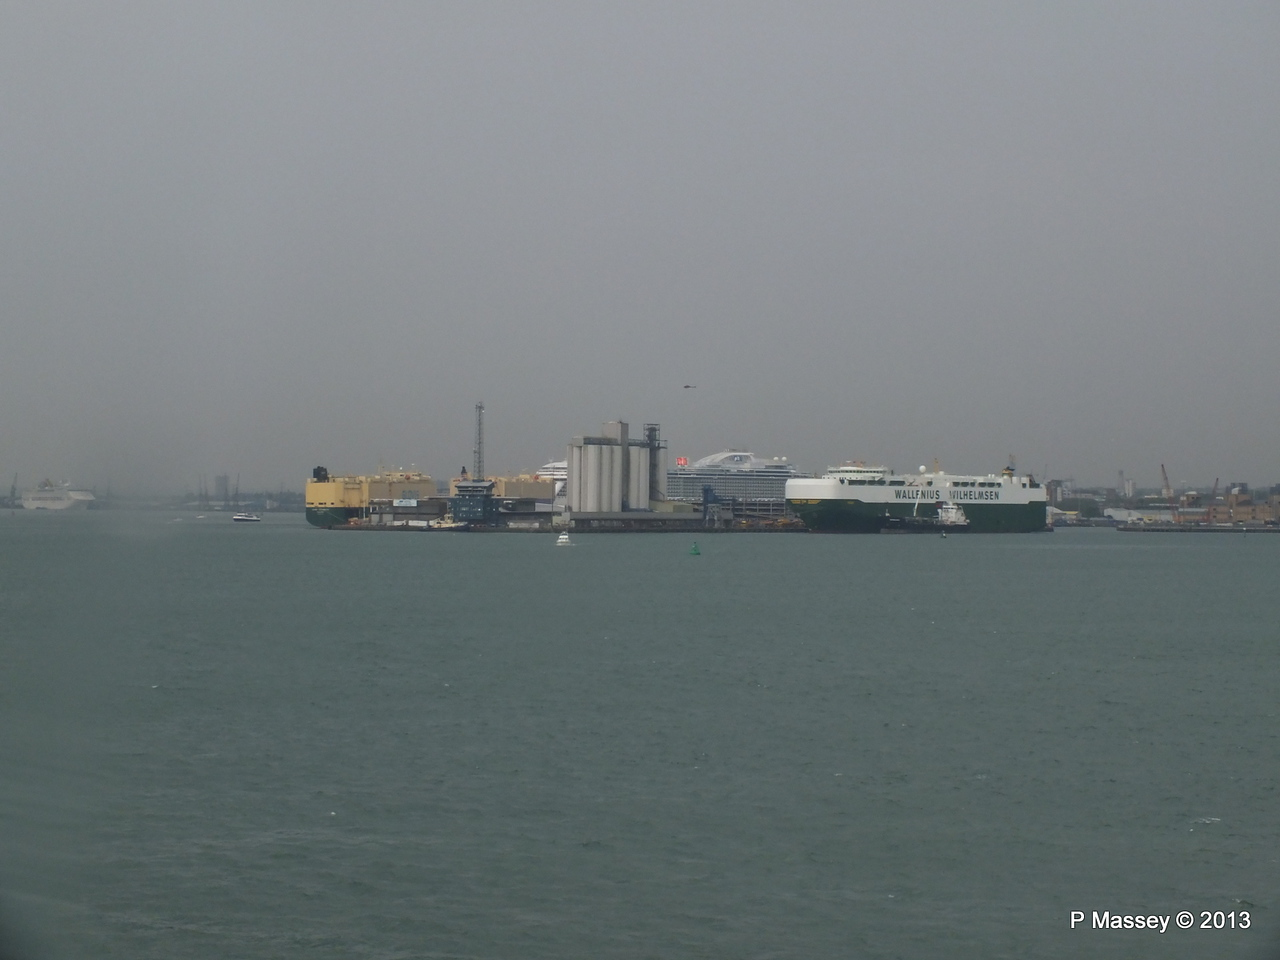 ROYAL PRINCESS behind others PDM 07-06-2013 11-30-30